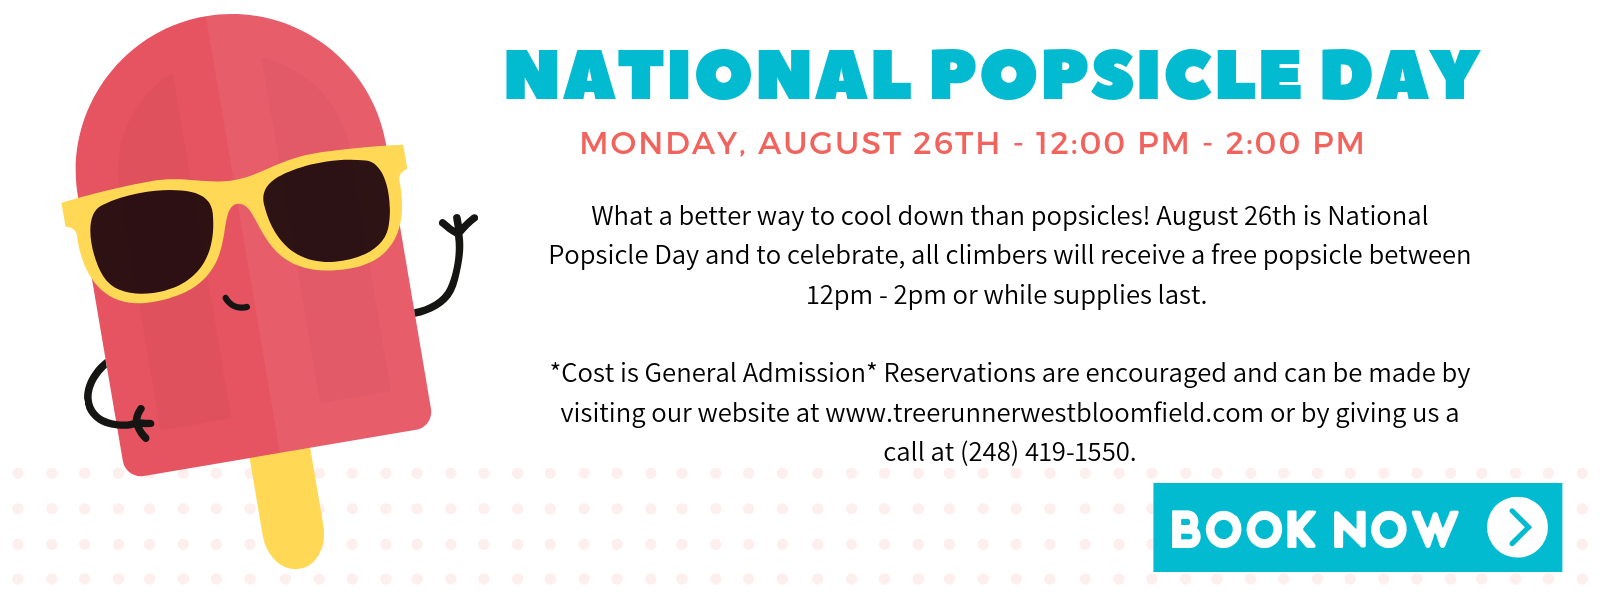 national popsicle day